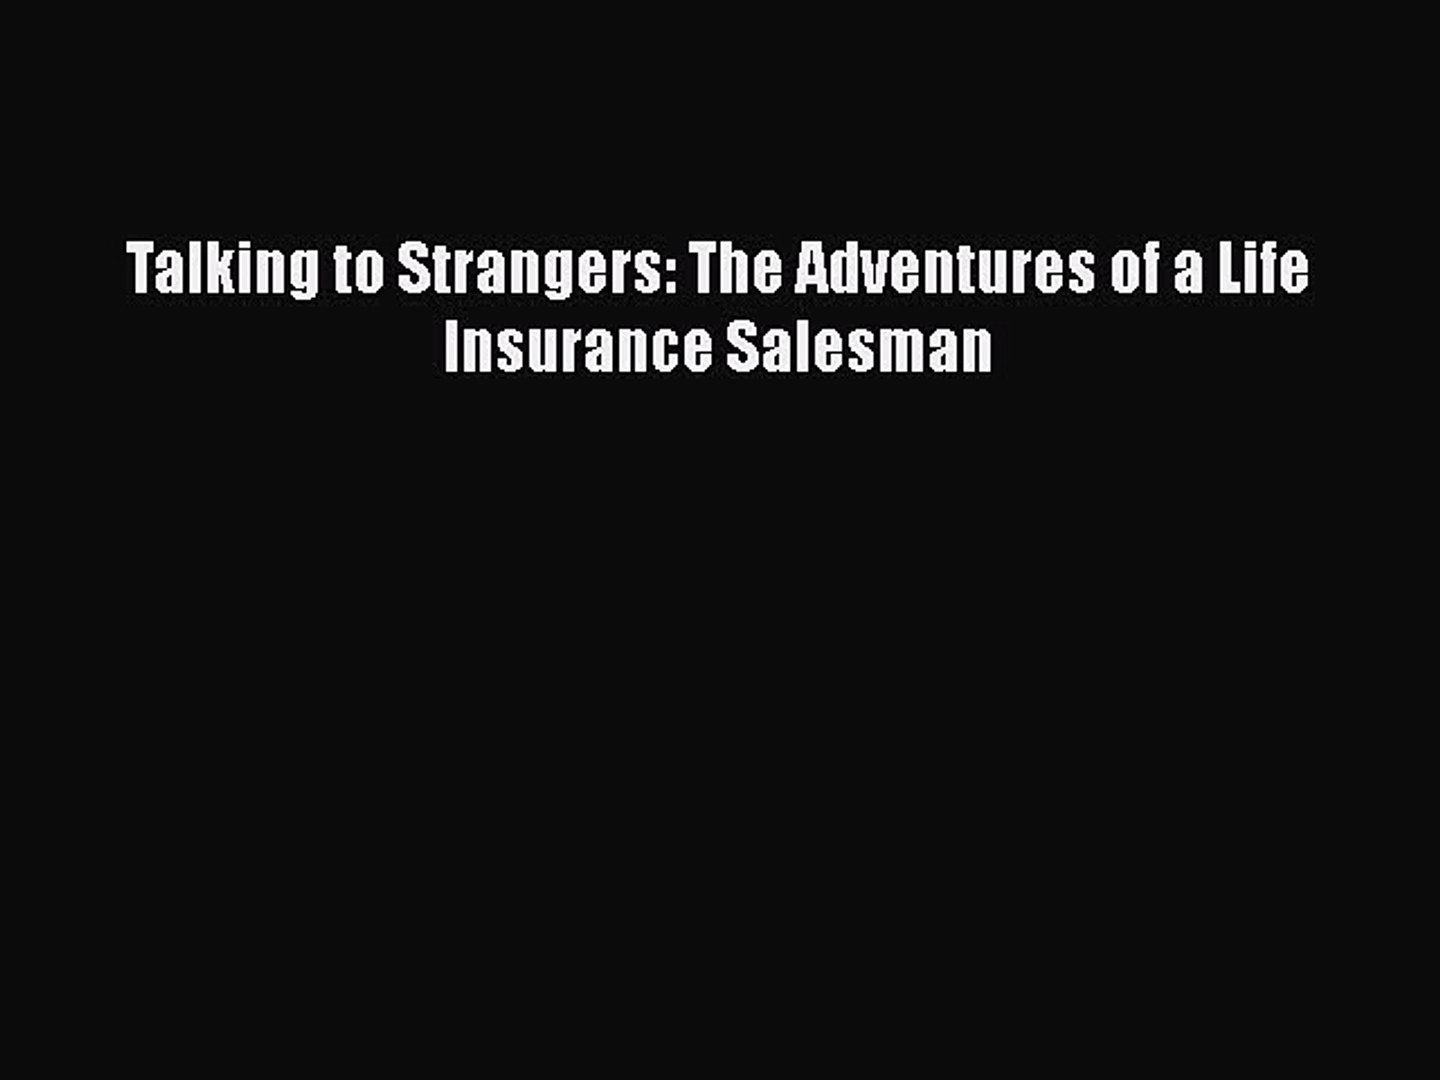 Talking to Strangers: The adventures of a life insurance salesman